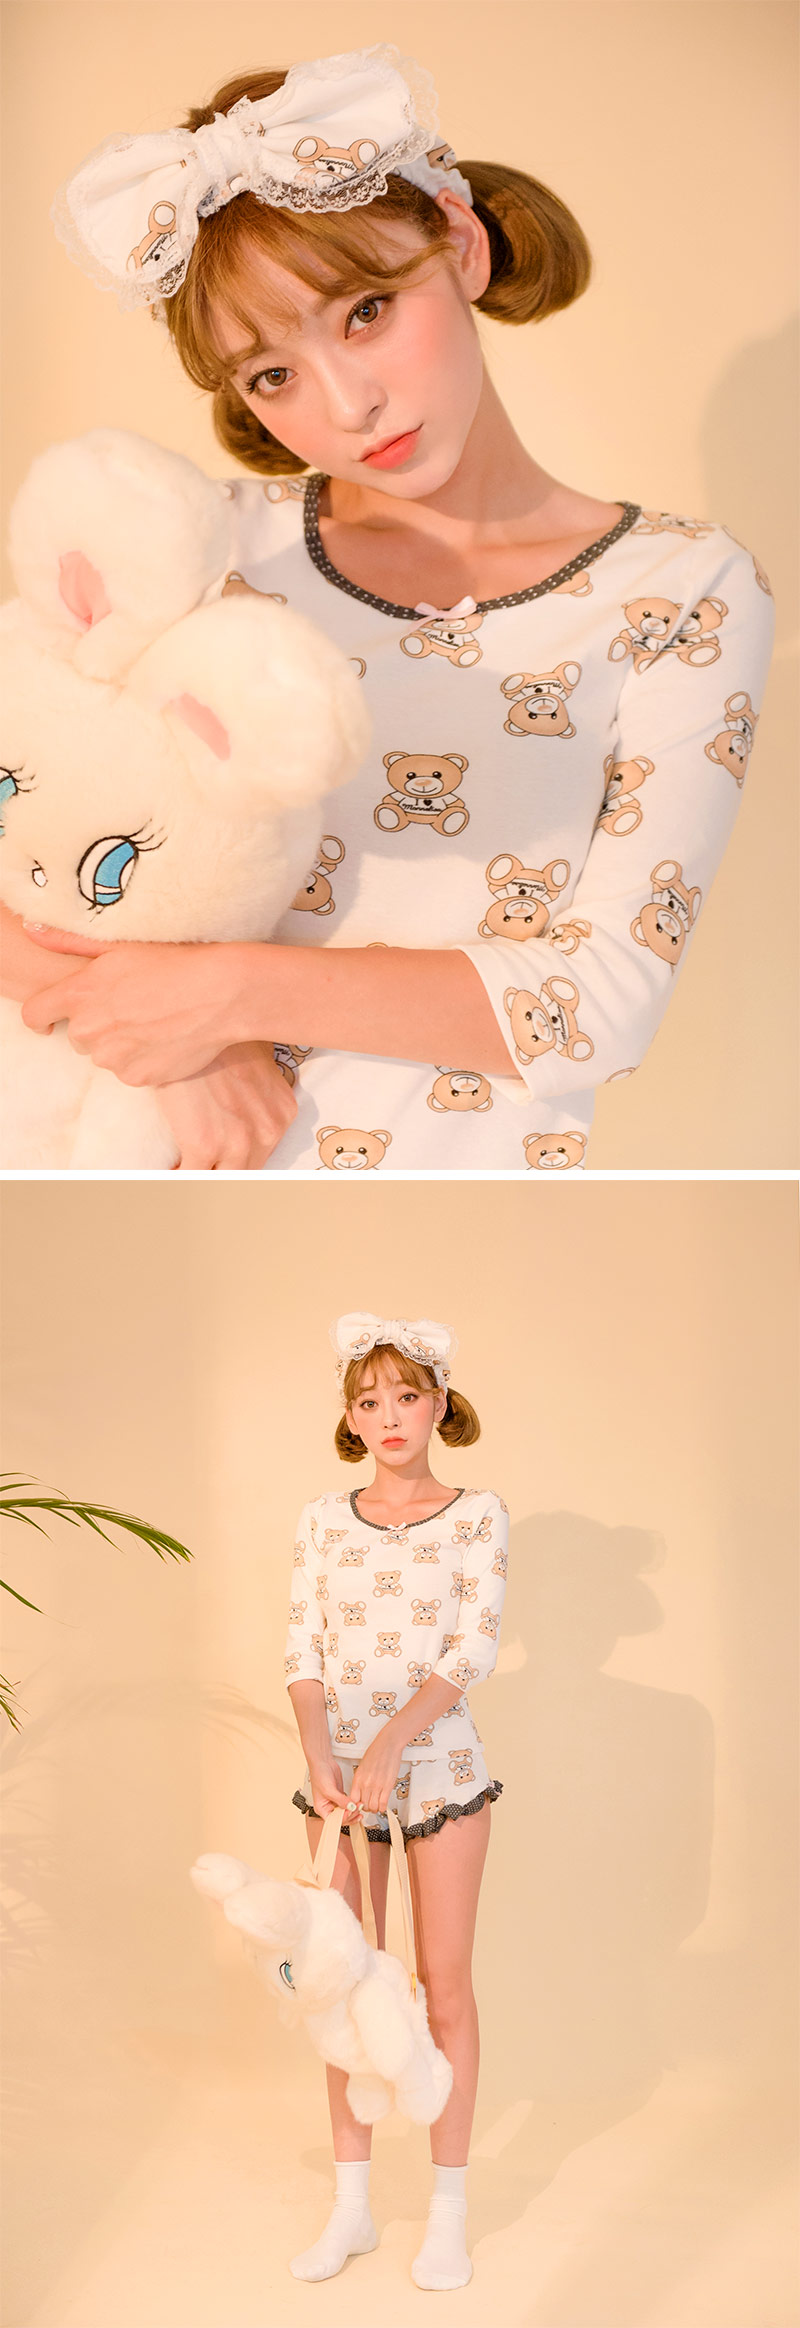 //cdn.nhanh.vn/cdn/store/29770/psCT/20180927/9208133/CHUU_I_Fancy_Bears_Pajama___Hairband_Set_(7).jpg